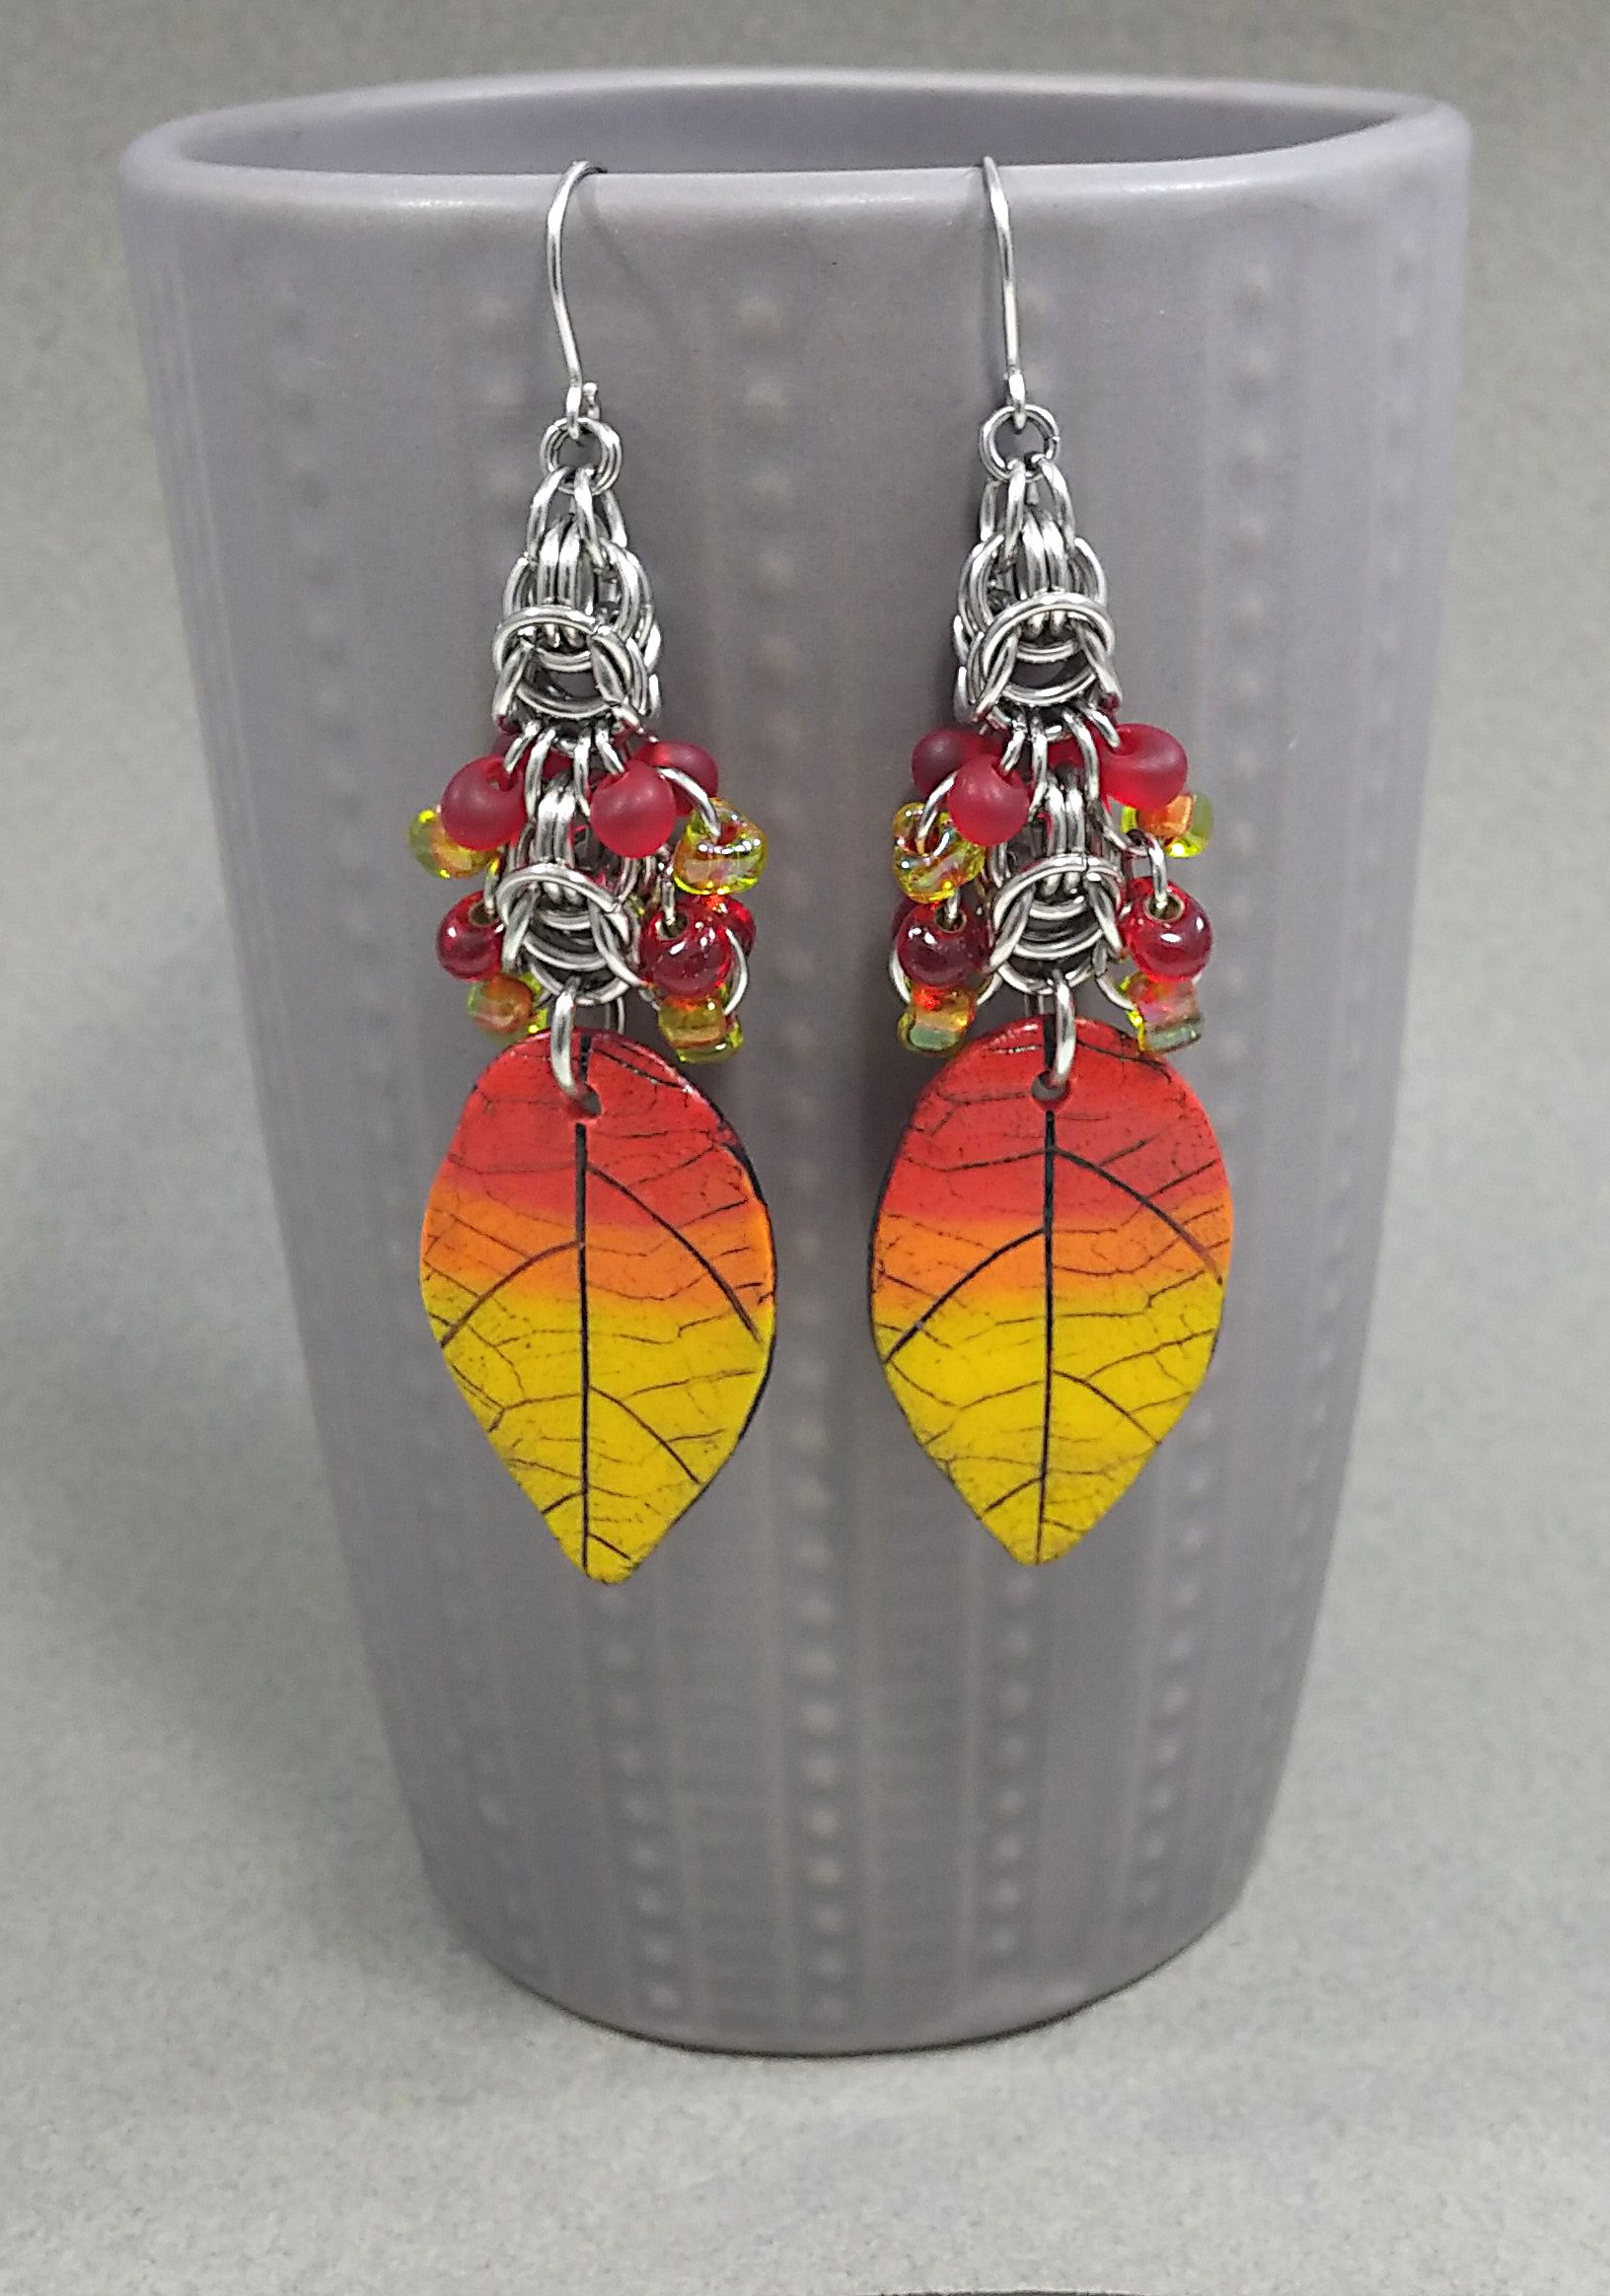 giftgorher festije fallcolors leaf artisanmade harvest fall leaves earrings jewelry thanksgiving